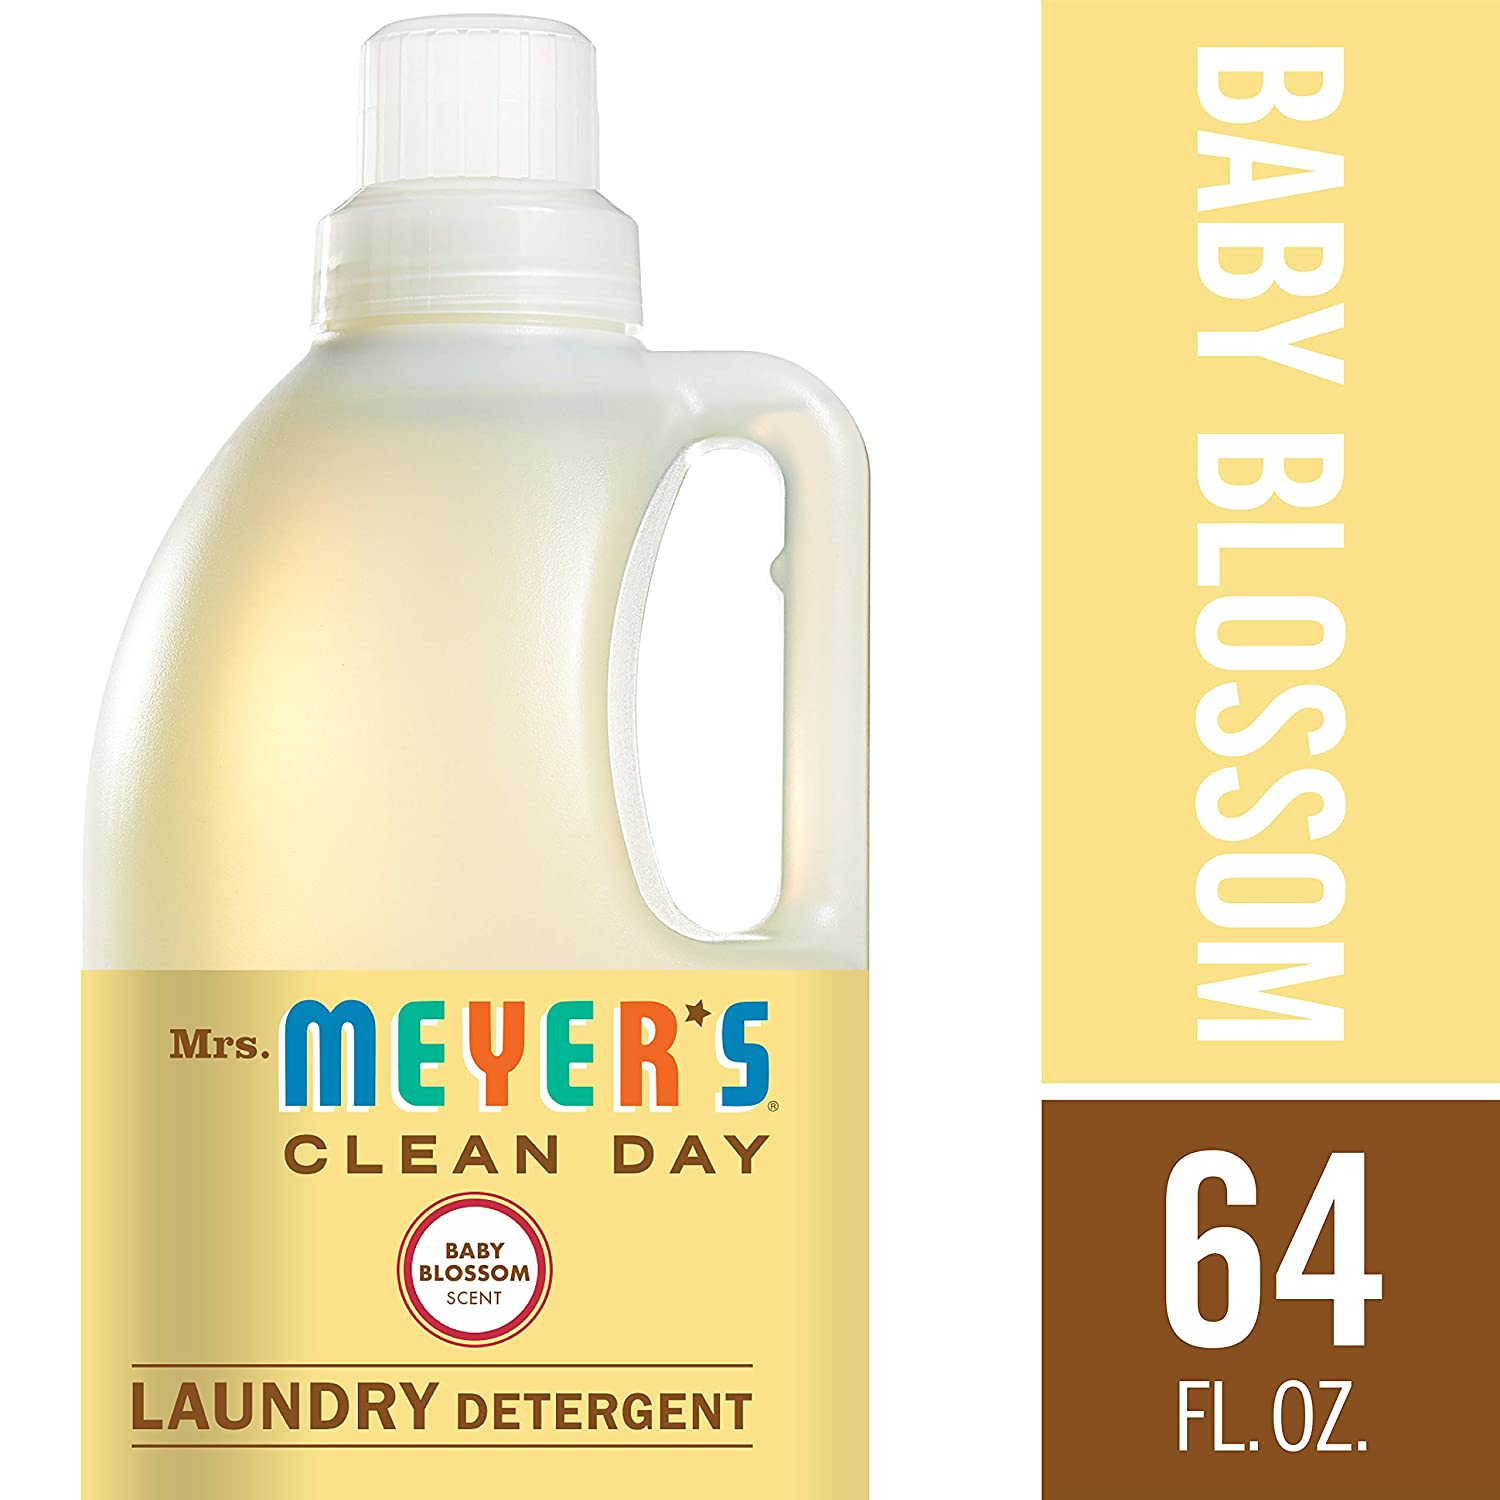 Mrs. Meyer's Clean Day Clean Day Laundry Detergent 2x, Baby Blossom 64 fl oz (1.89 l) Mrs. Meyer's Clean Day thomaswi